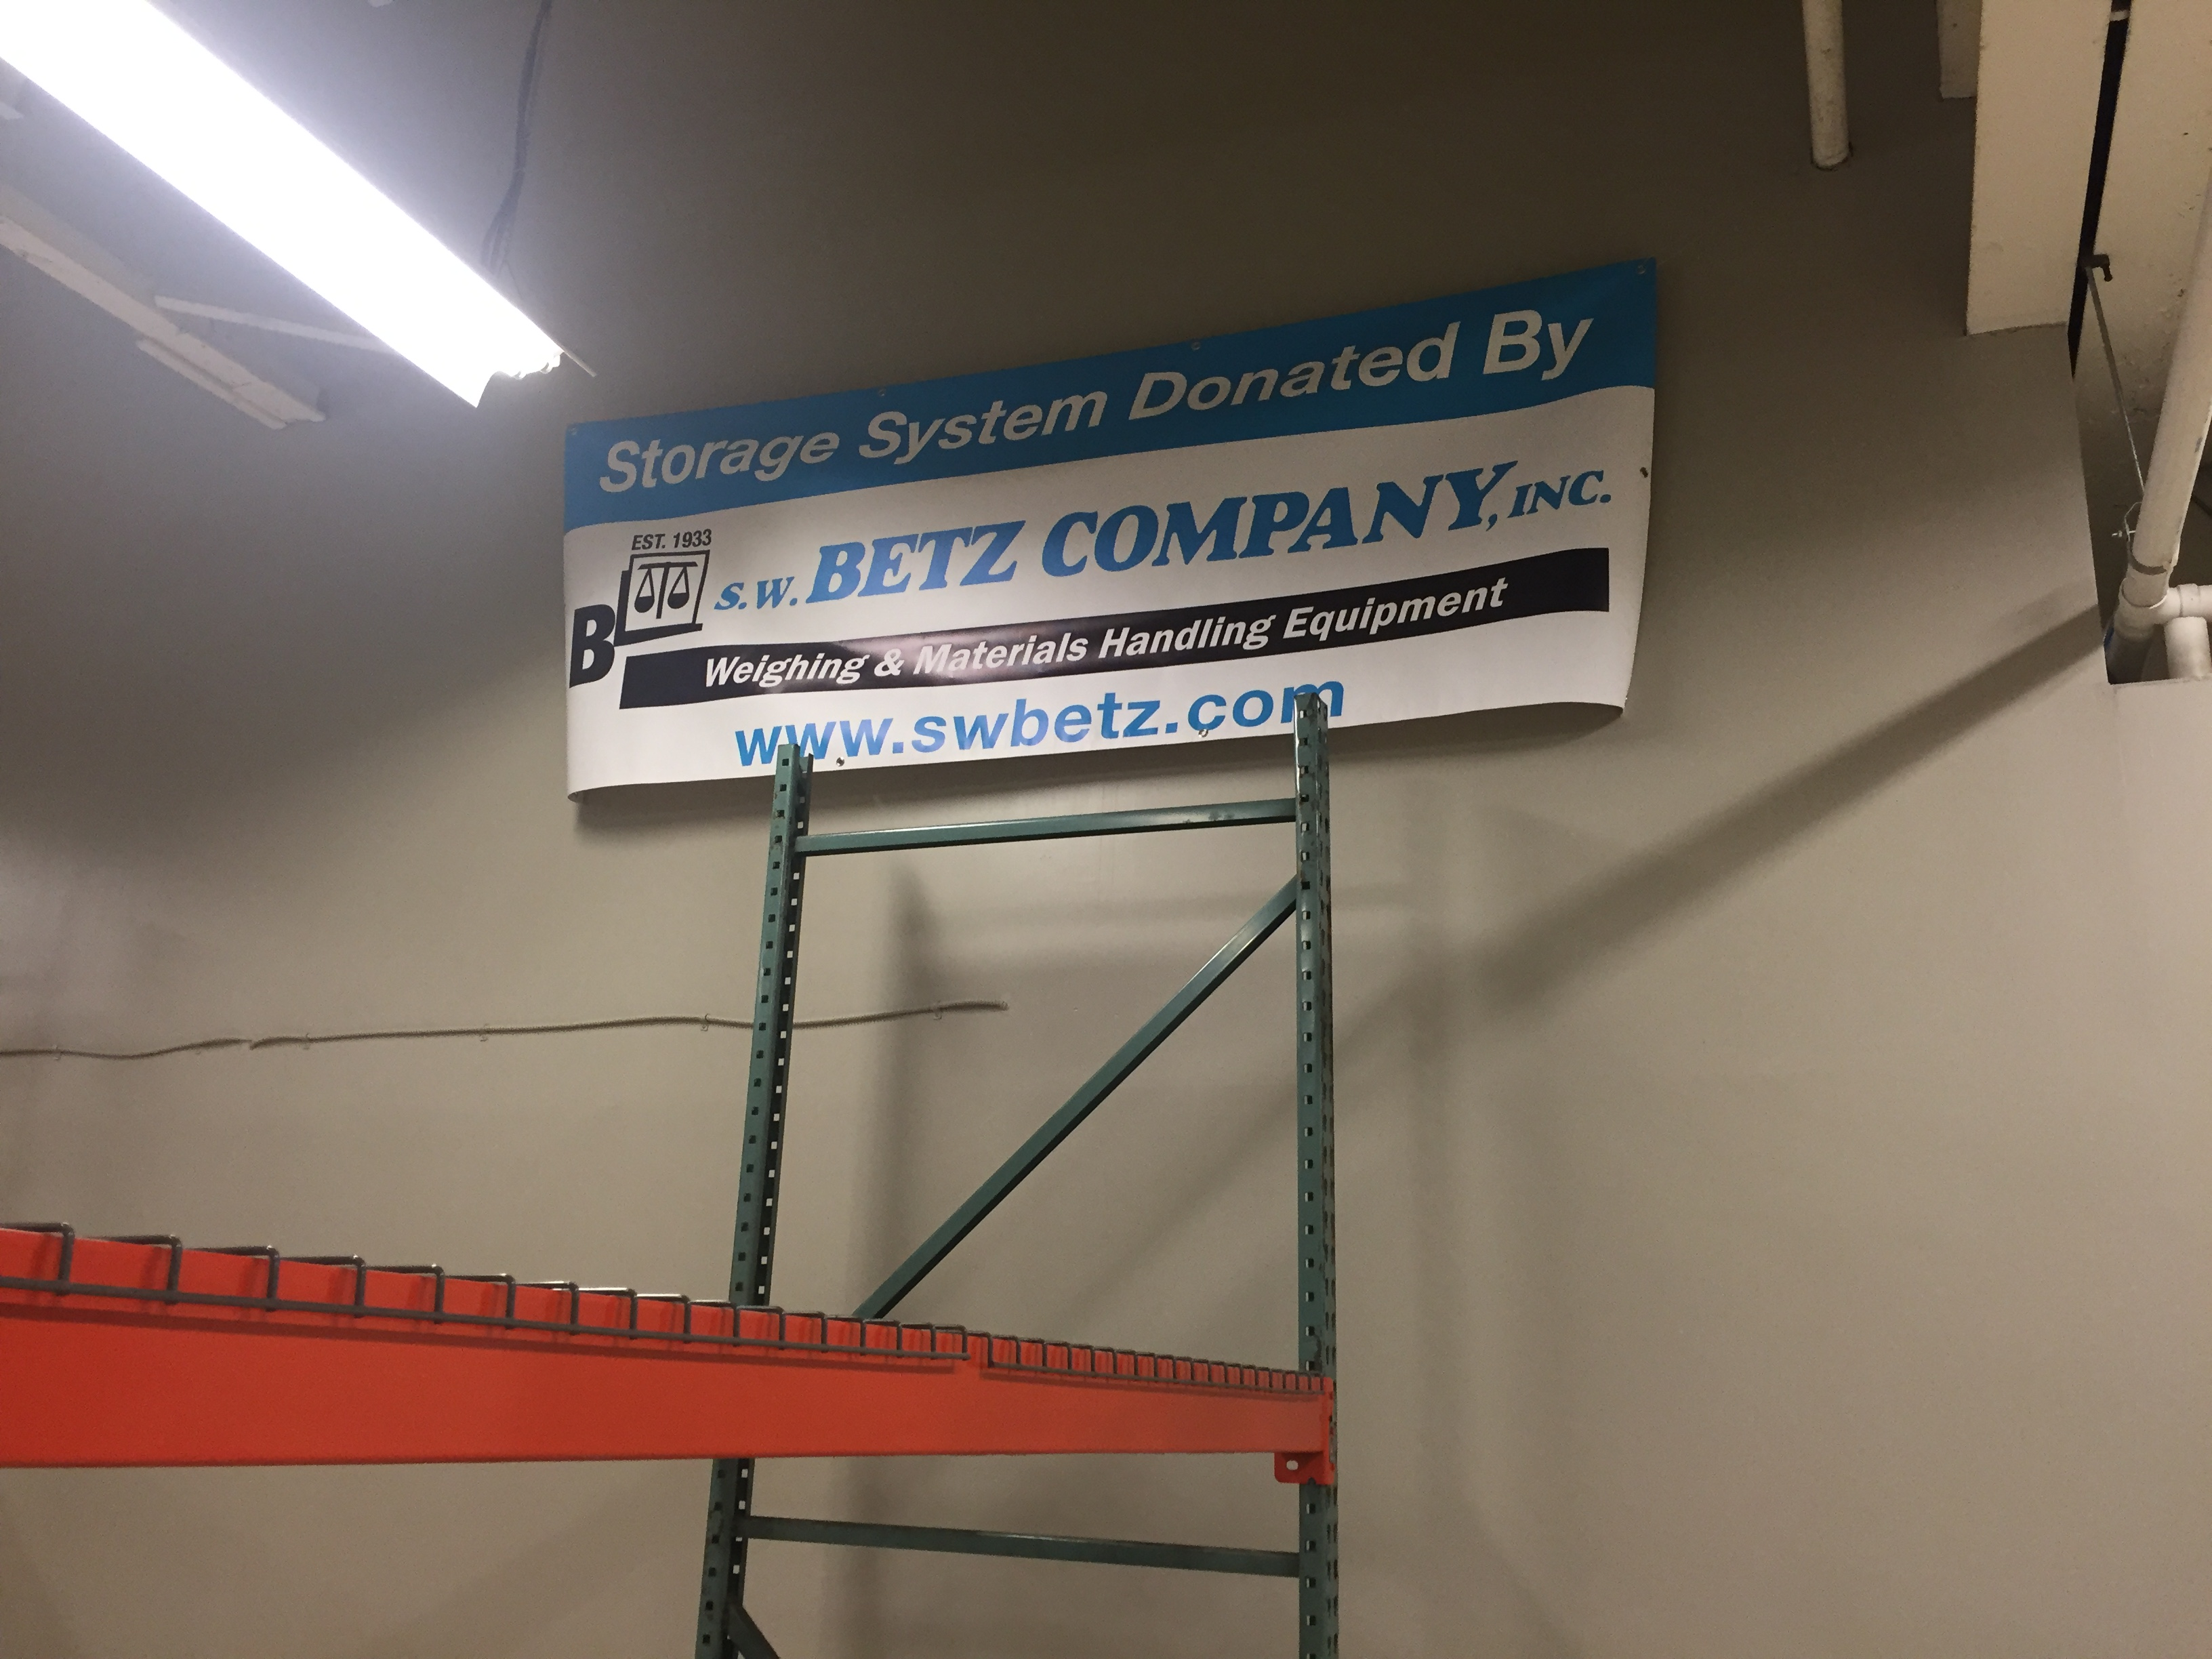 Sw betz in the community baltimore city community college baltimore city community college bccc is incorporating an exciting new program for young professionals to become certified in many warehouse and 1betcityfo Choice Image